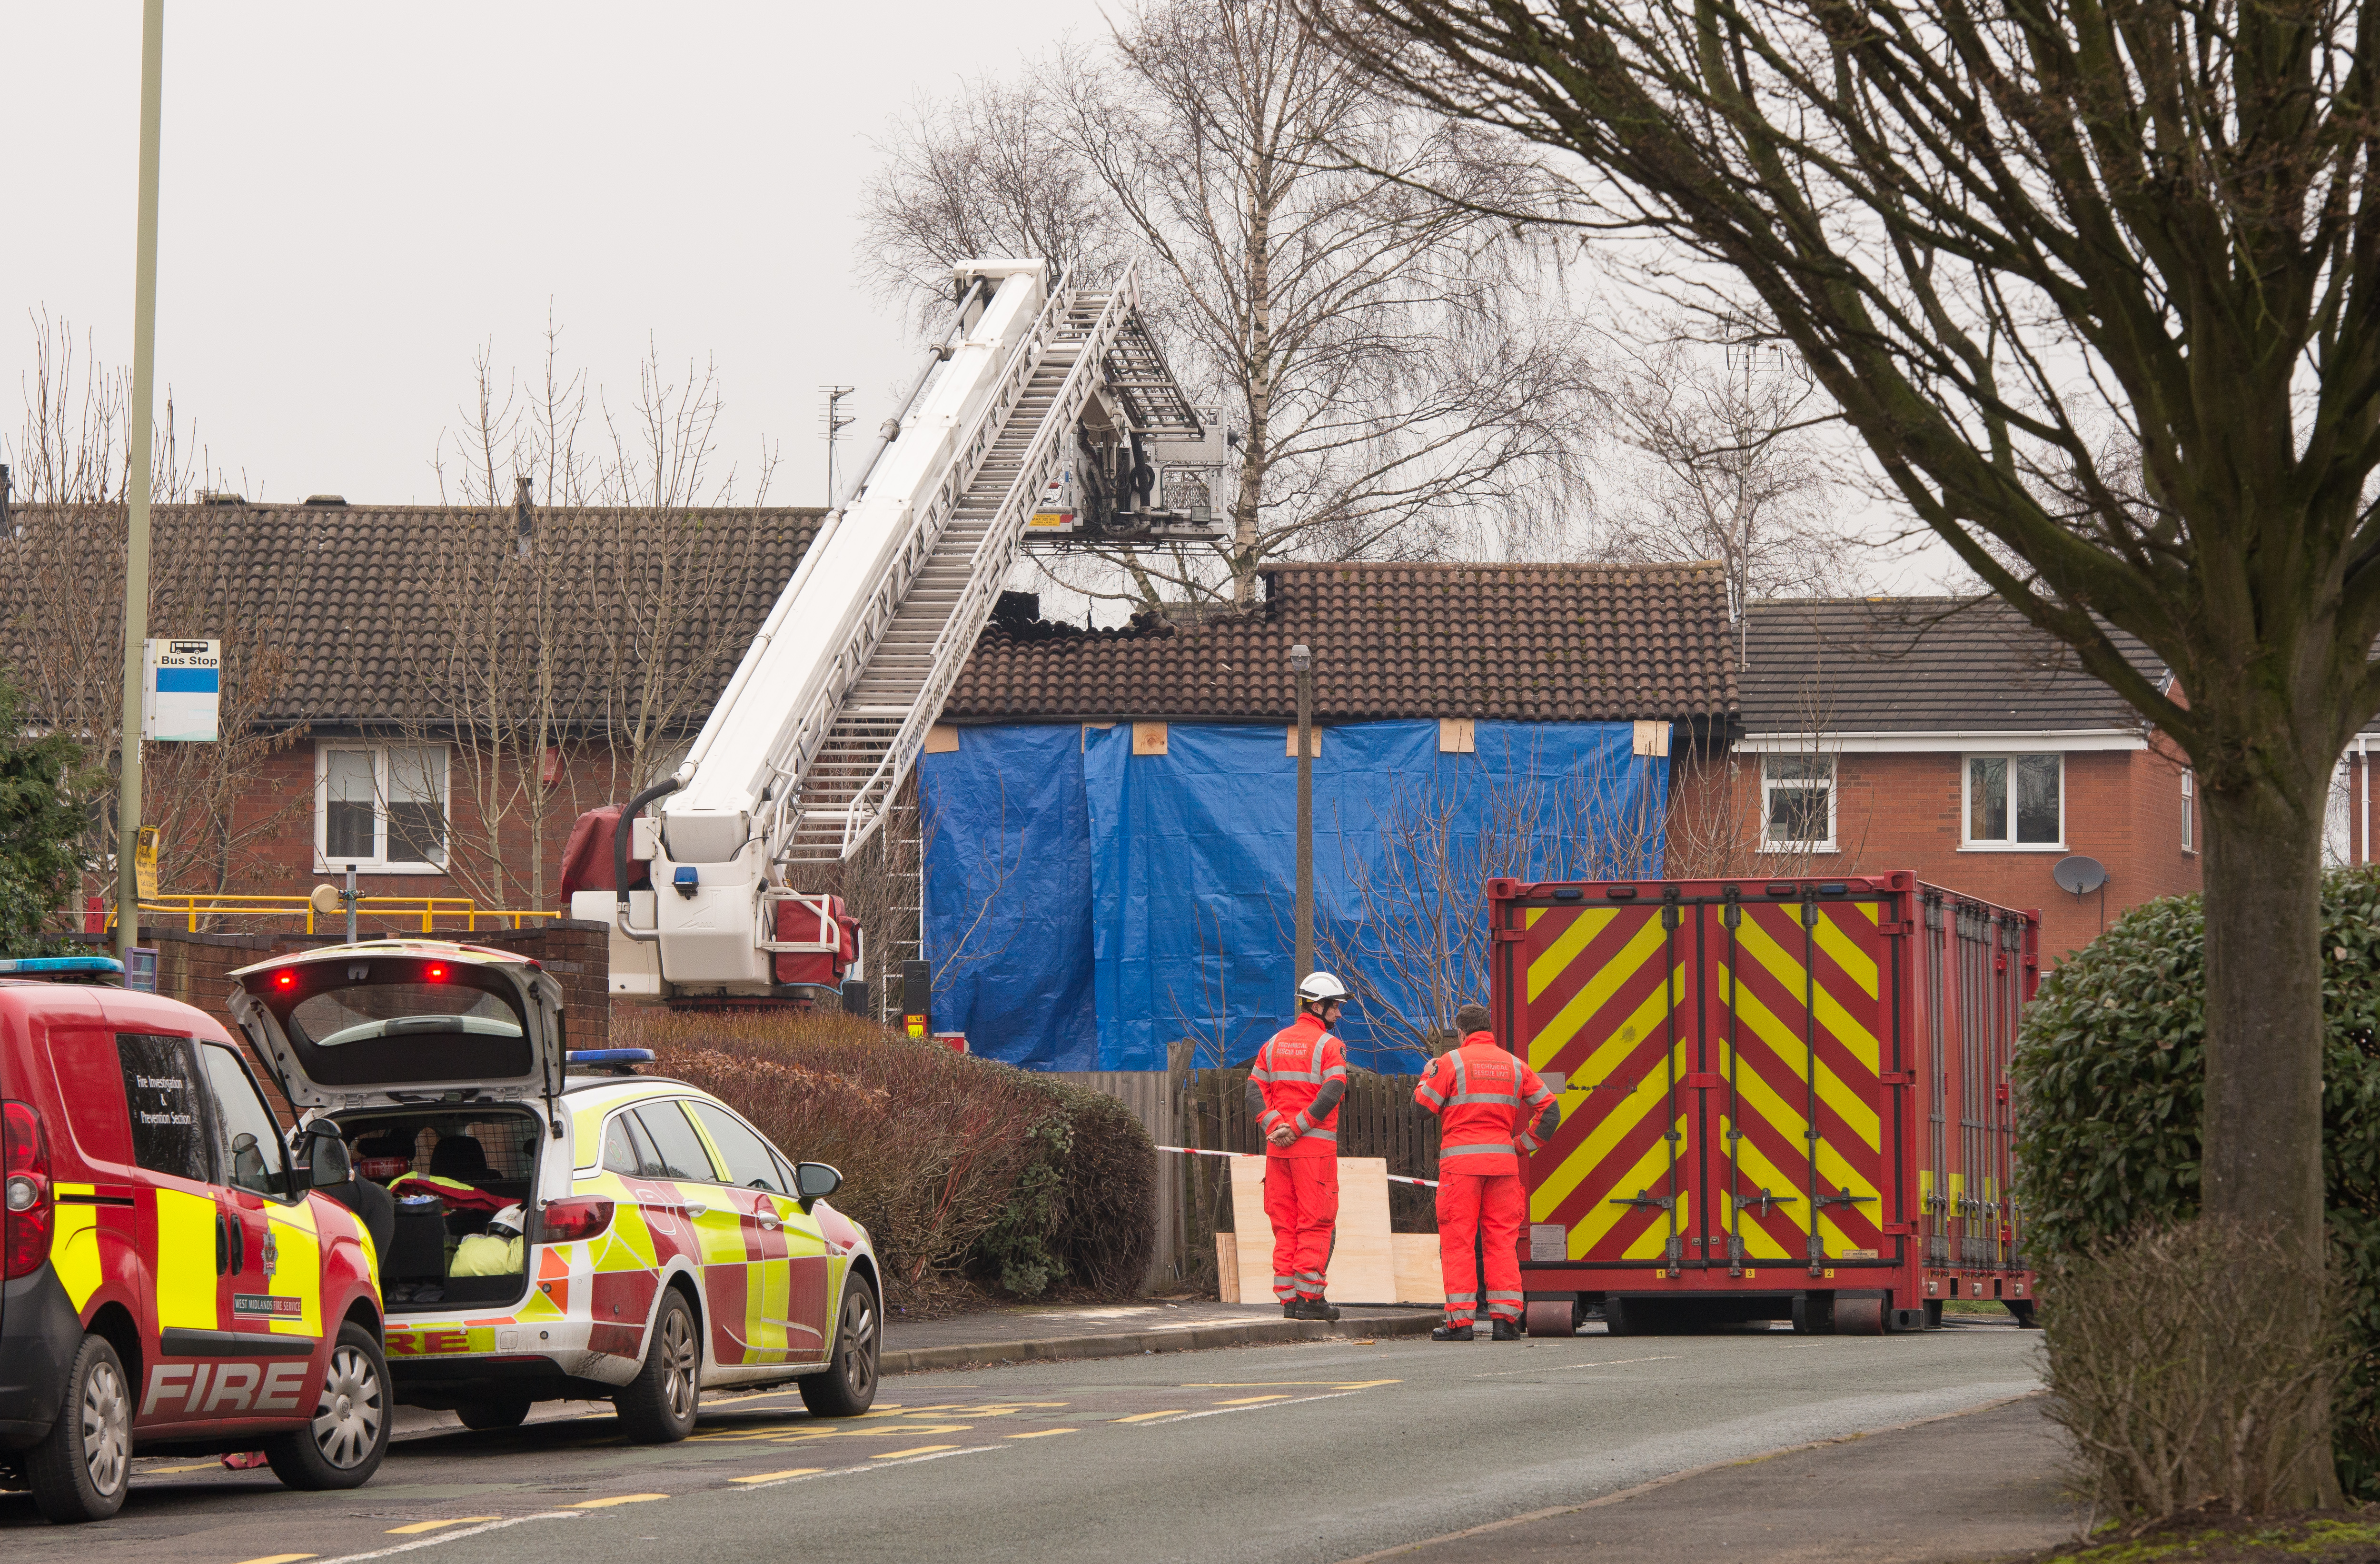 Staffordshire Fire and Rescue personnel stand outside a tarpaulin covered property with a burnt out roof at the scene of a deadly house fire on February 5, 2019 in Stafford, England.